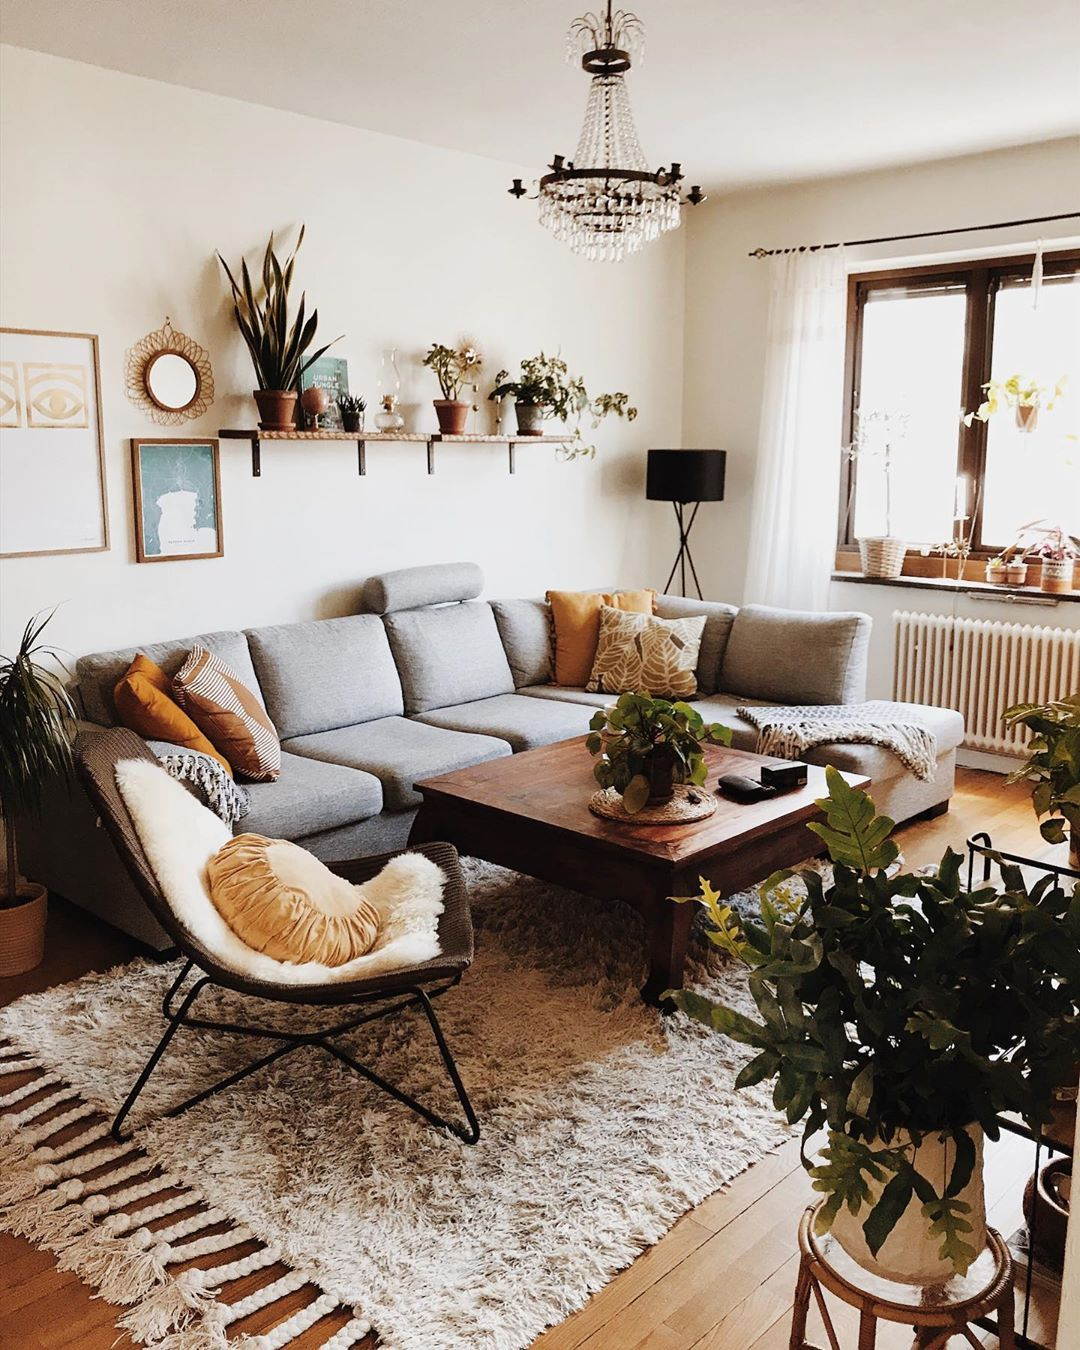 Emma On Instagram Day Off Putting My Feet Up On The Sofa No Big Plans And Home Living Room Minimalist Living Room Decor Apartment Living Room #no #sofa #living #room